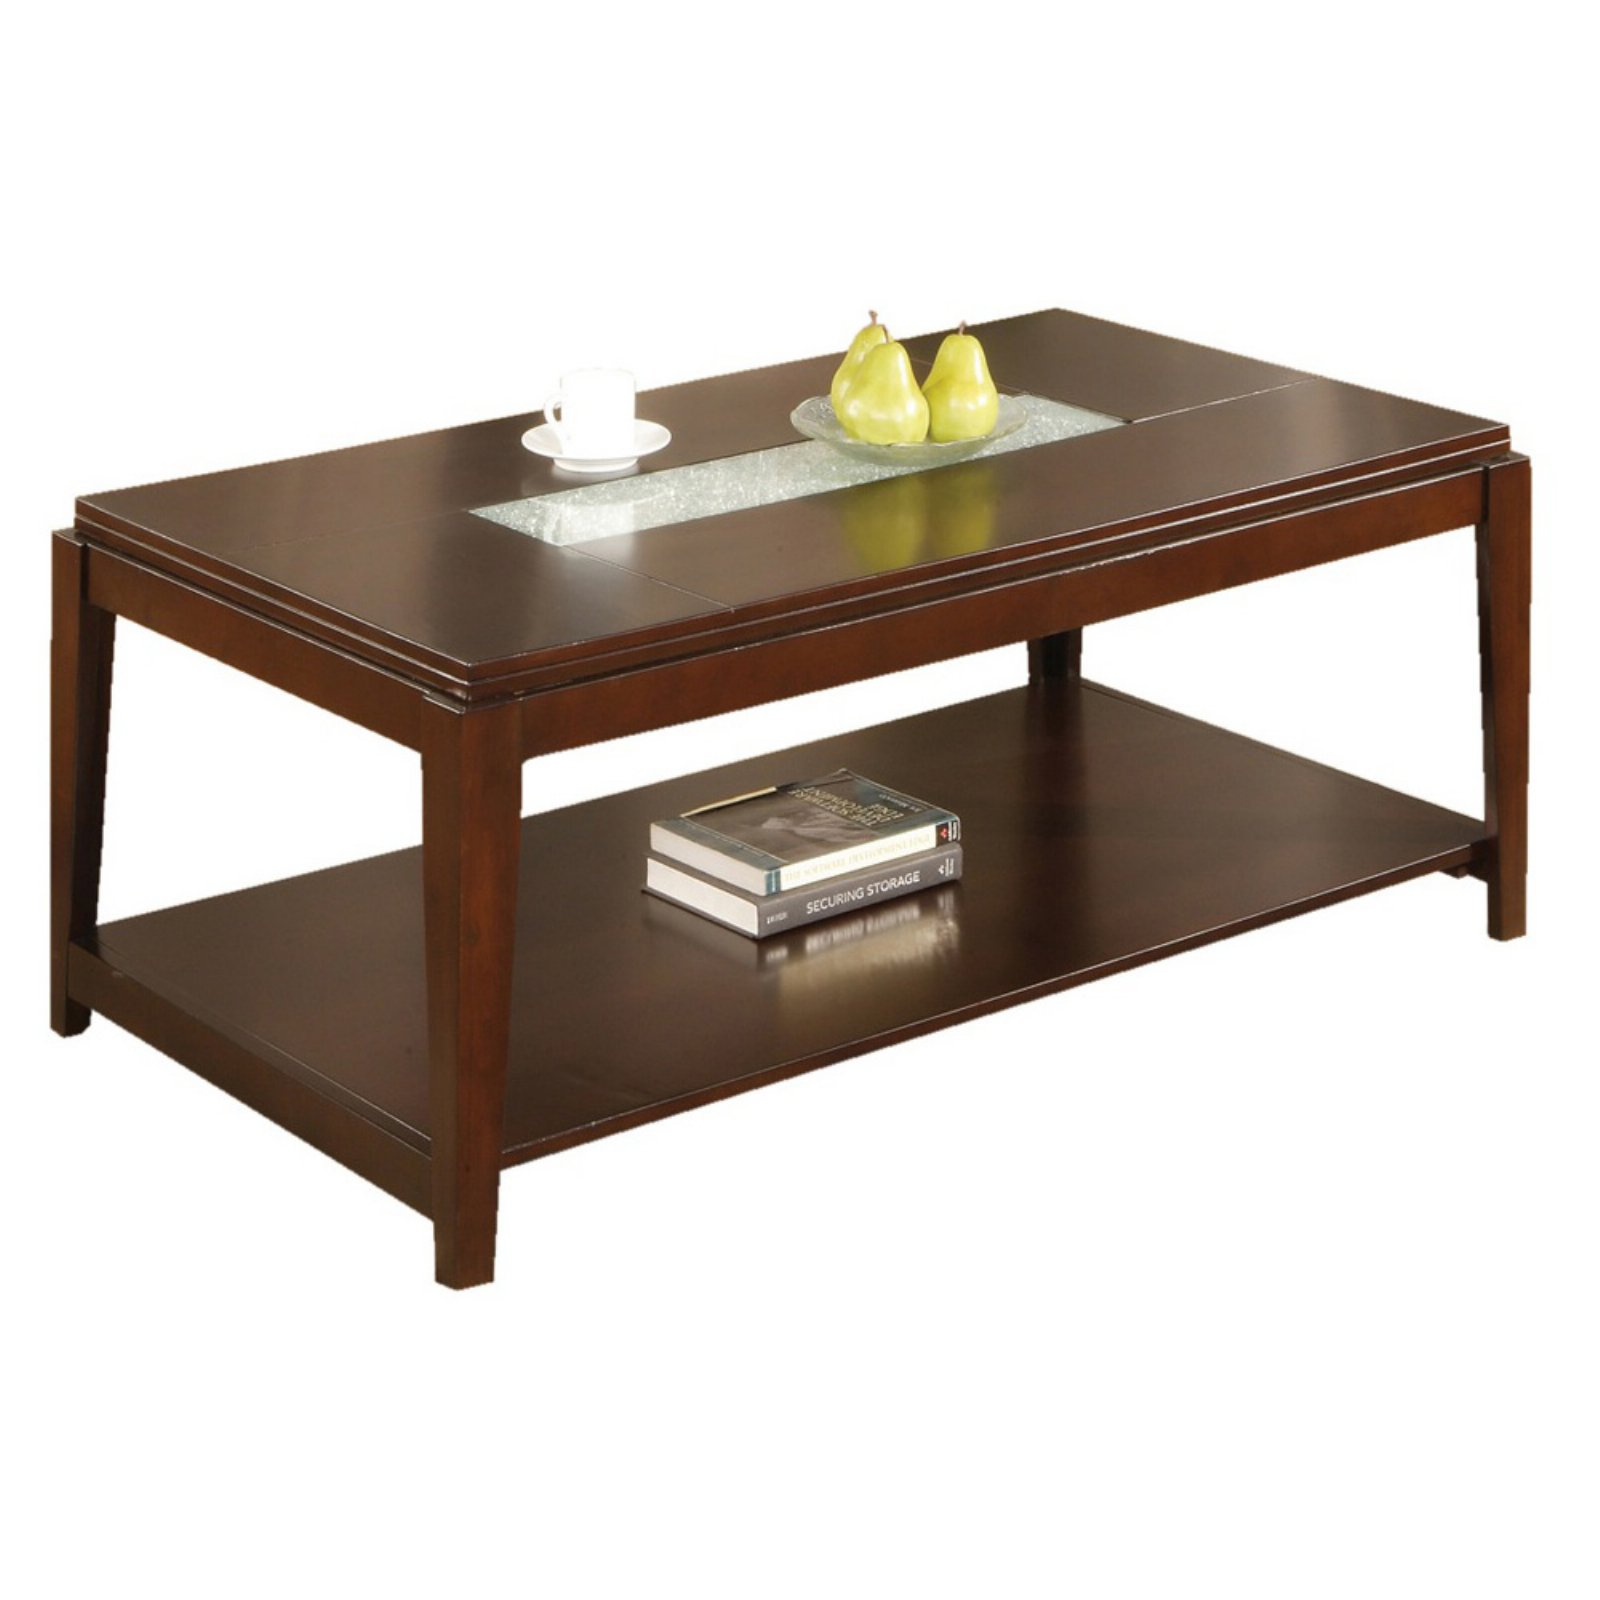 Steve Silver Ice Rectangle Cherry Wood Coffee Table With Cracked Glass  Insert